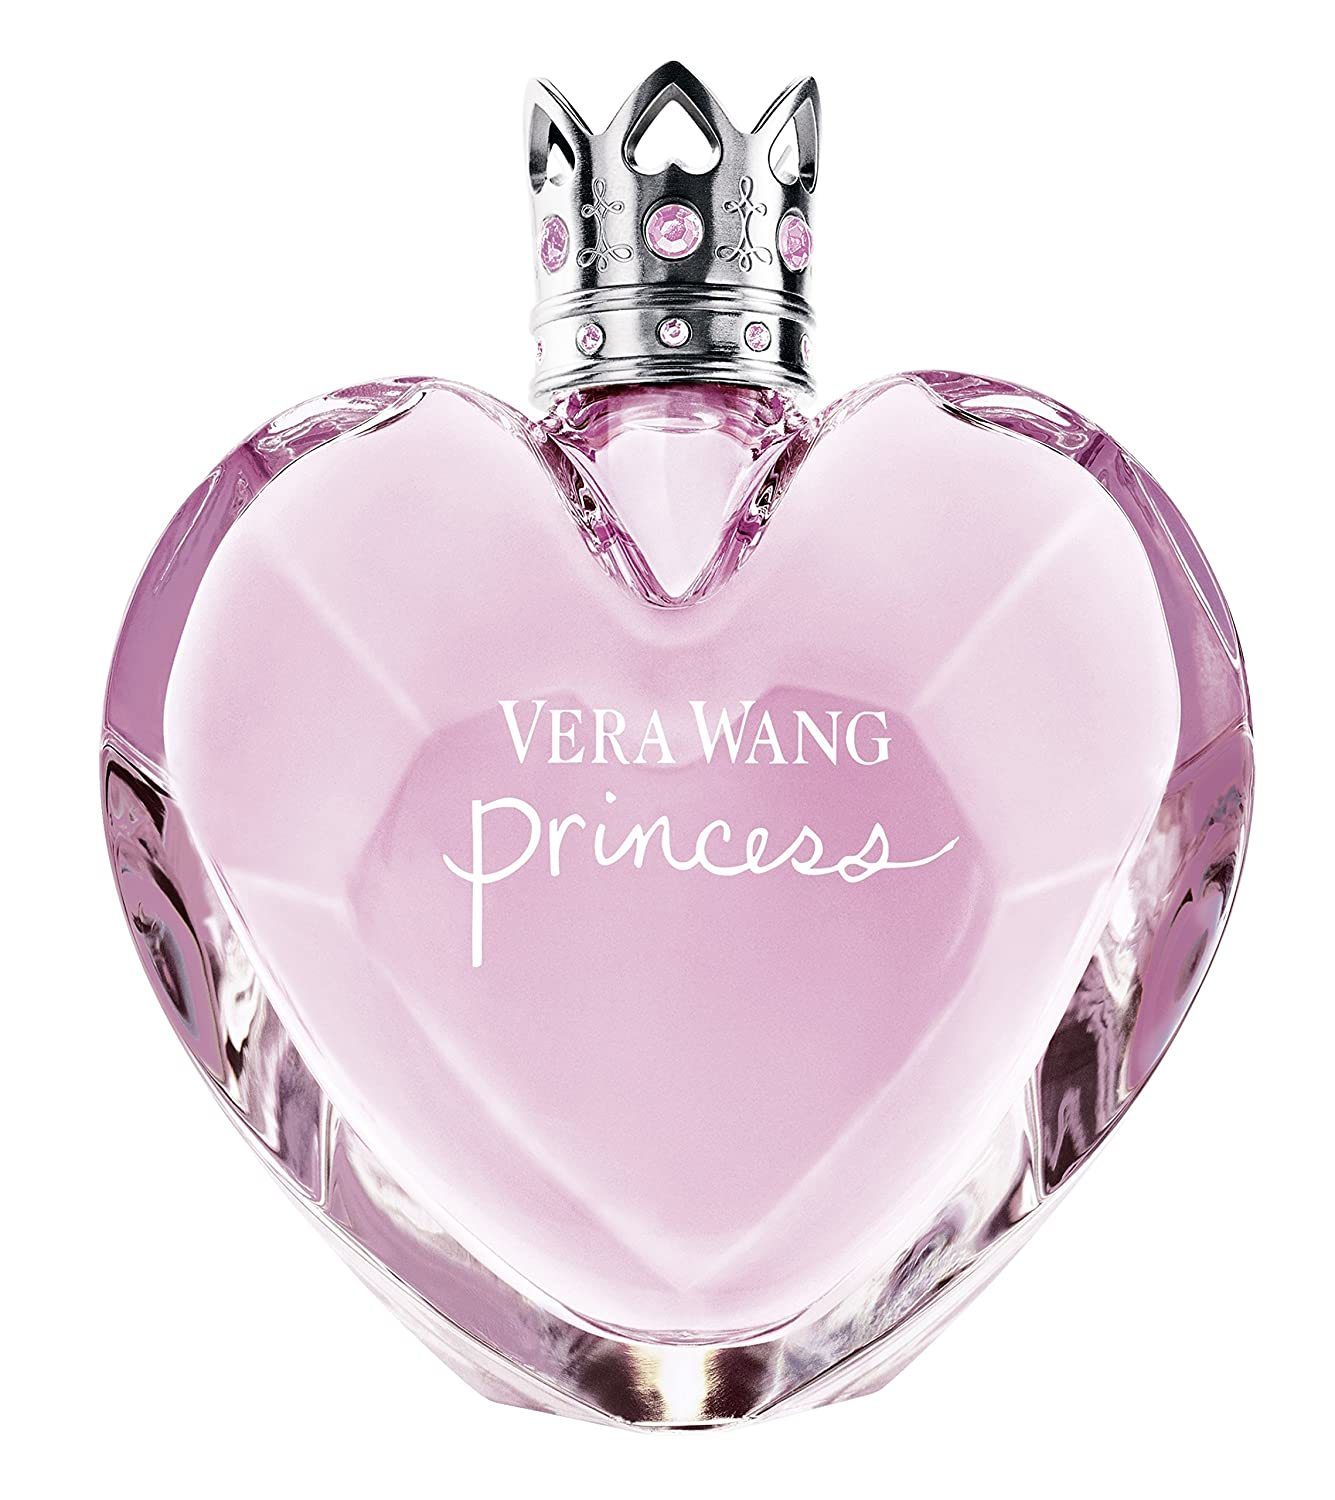 Vera Wang Princess Flower Perfume (100ml EDT) image